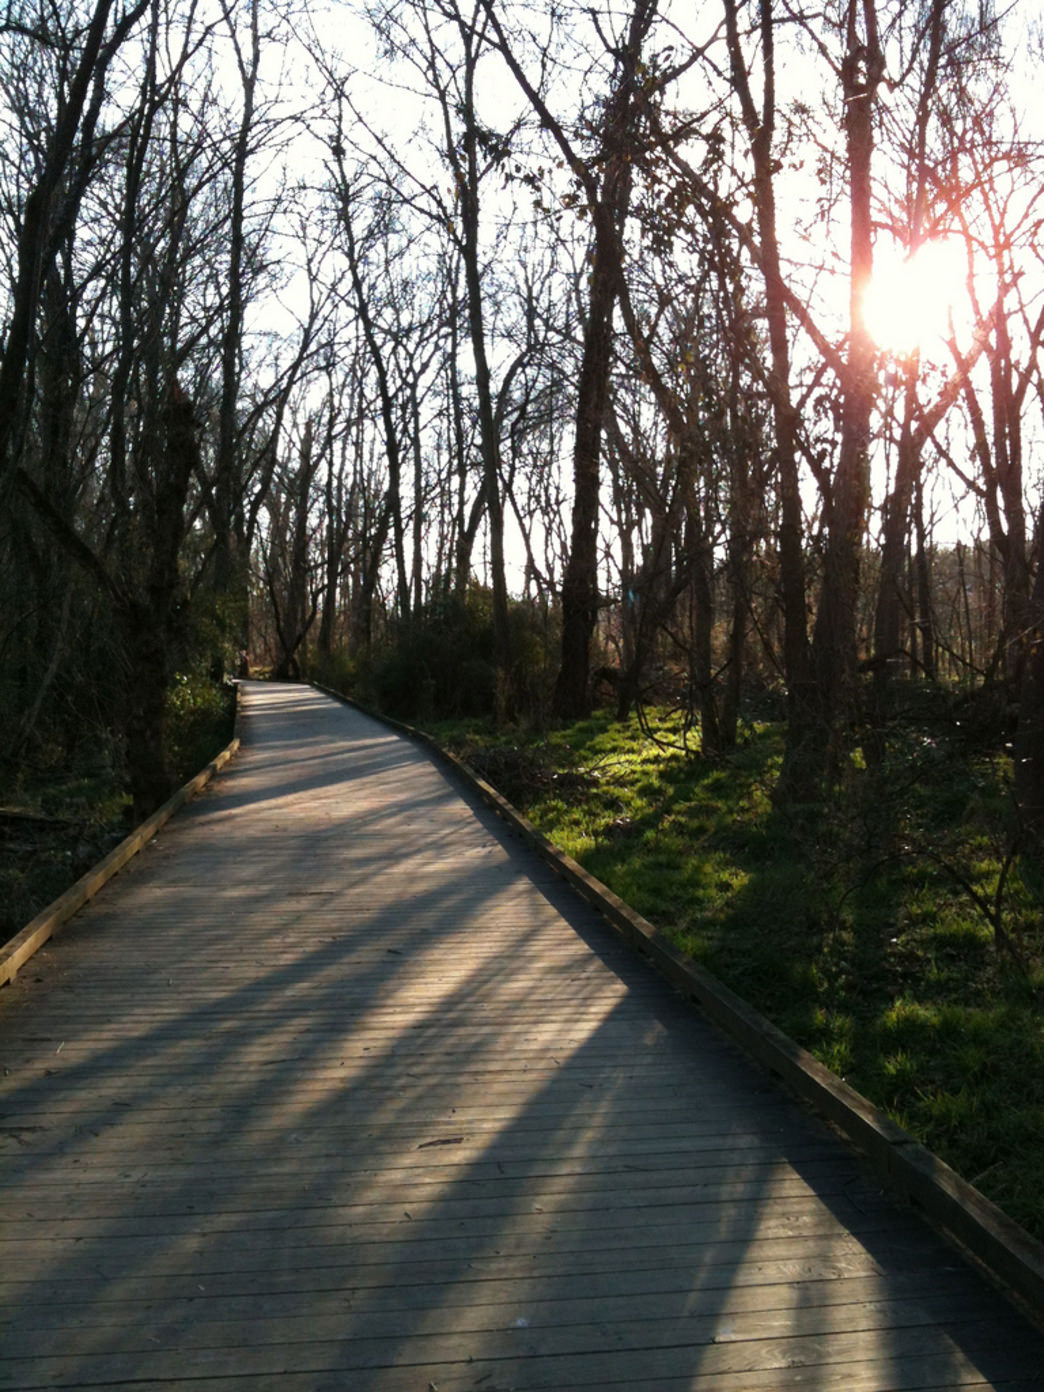 From the farm to the city - Molly's childhood taught her the value of spending time outdoors. Four Mile Creek Greenway is her favorite greenway escape